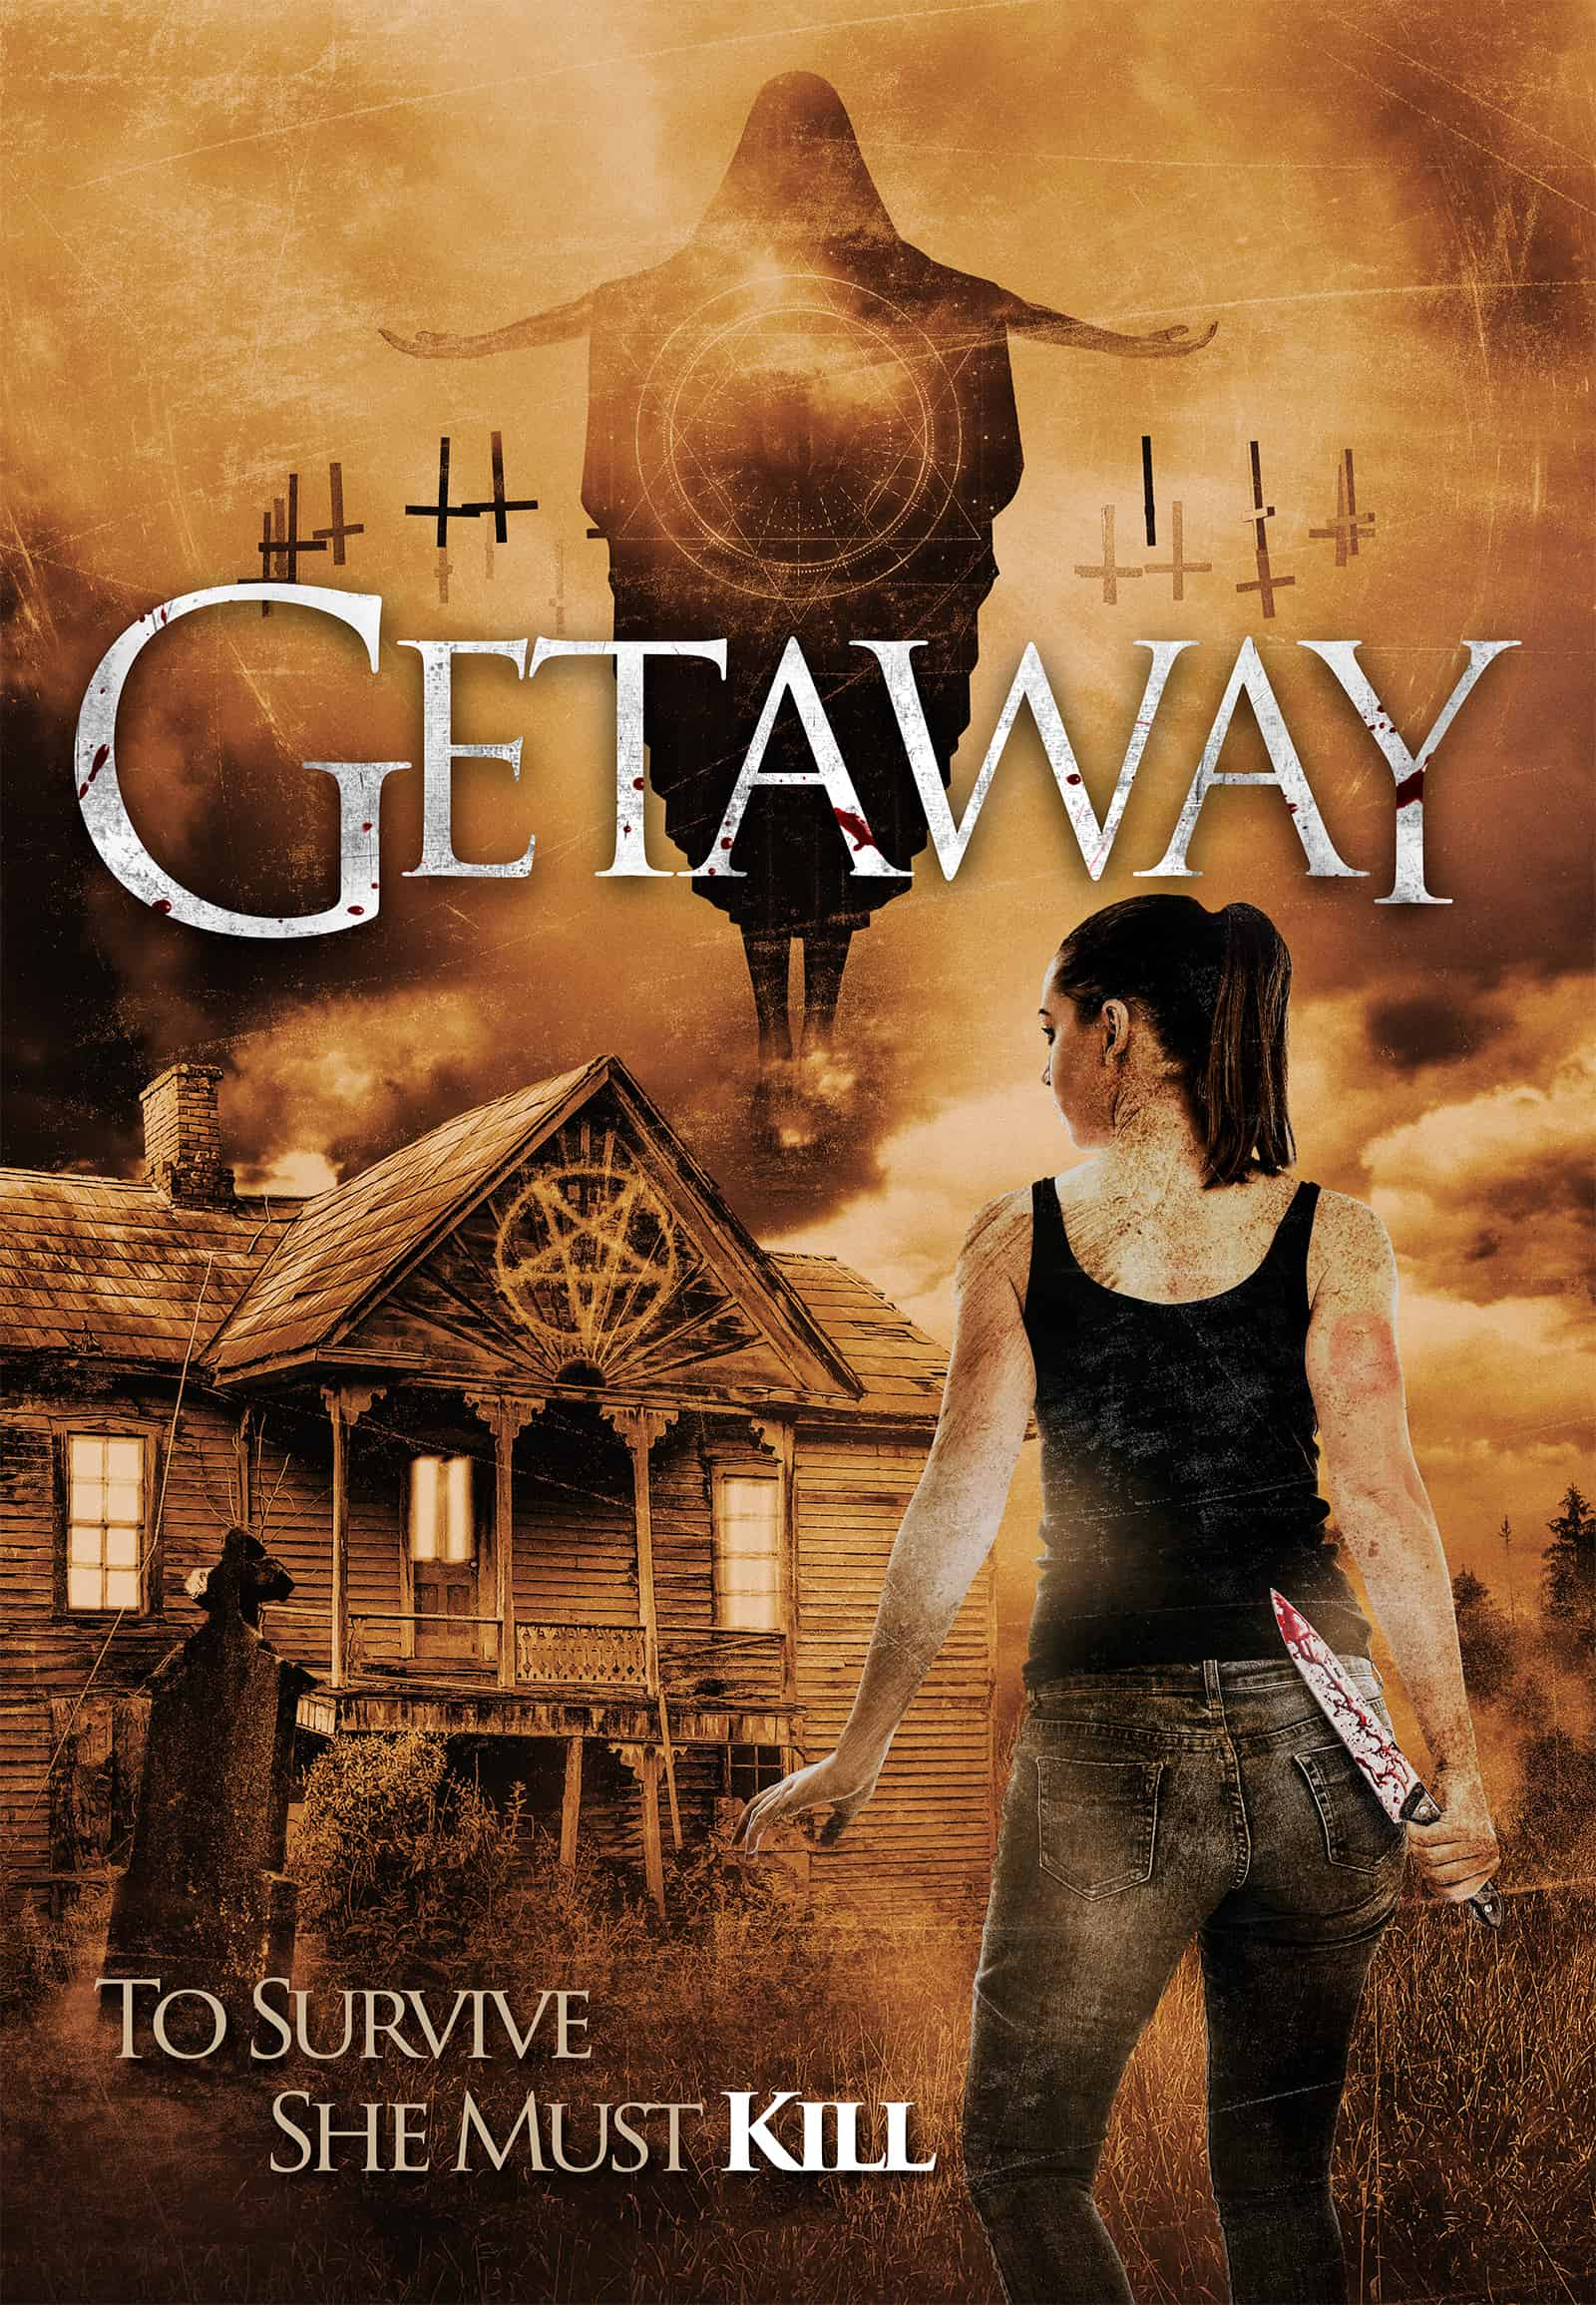 the getaway random news